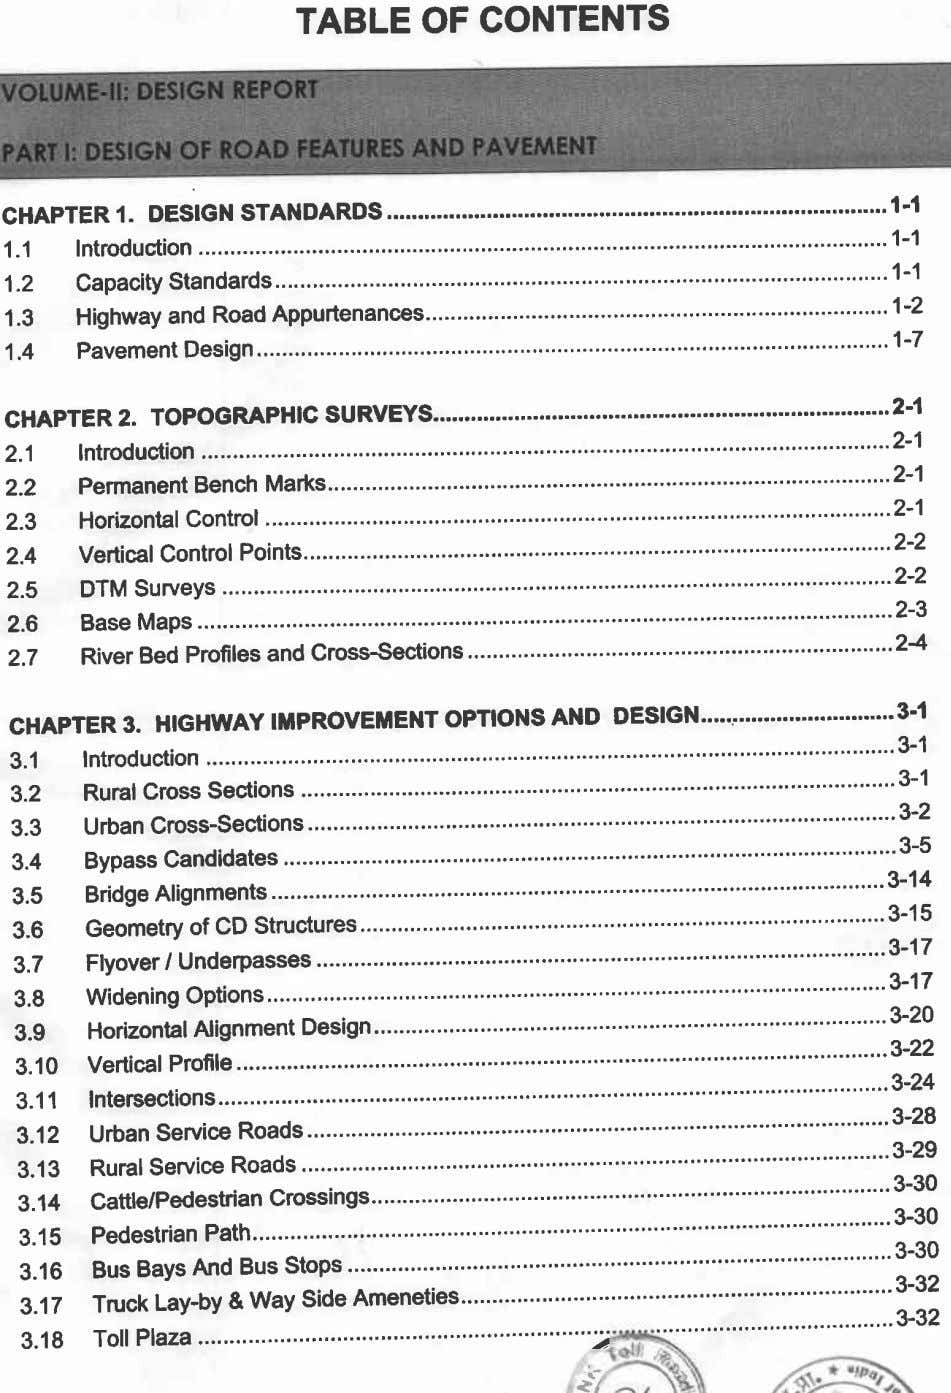 TABLE OF CONTENTS OF ROAD FEP AND PAVEMENT . CHAPTER I. DESIGN STANDARDS 1-1 1.1